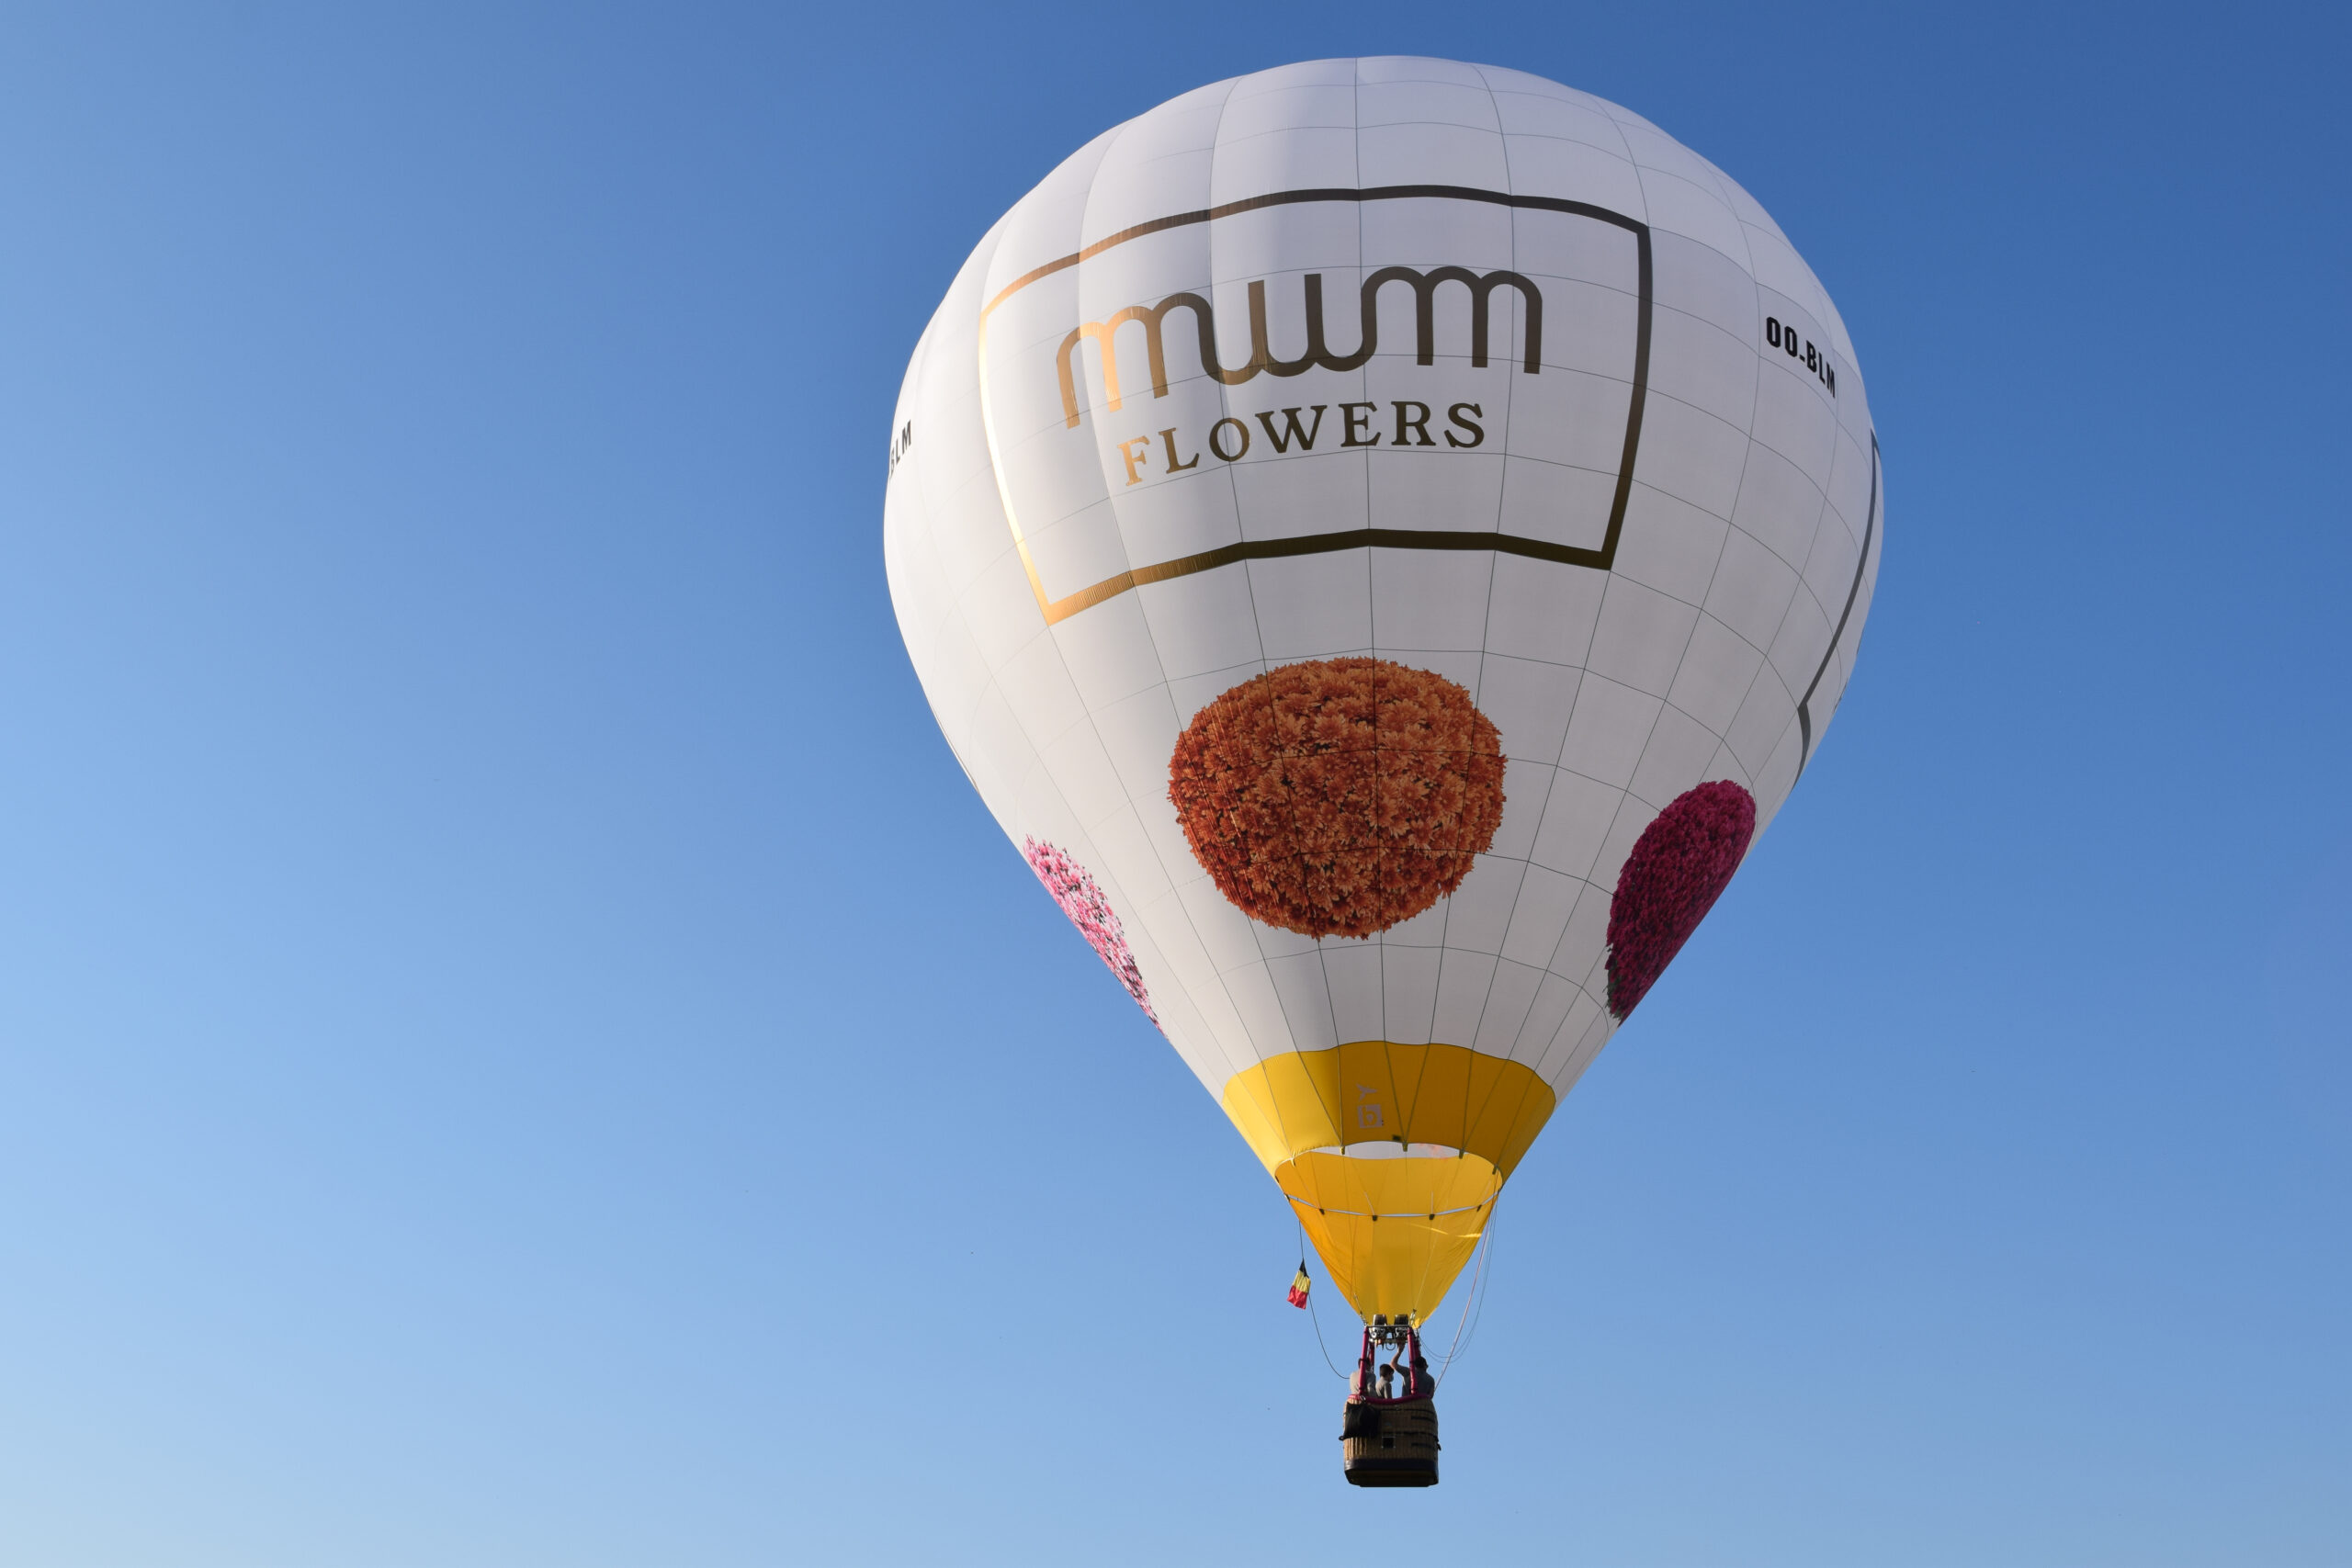 Up up and away in the Mum Flowers hot air balloon, a heavenly experience